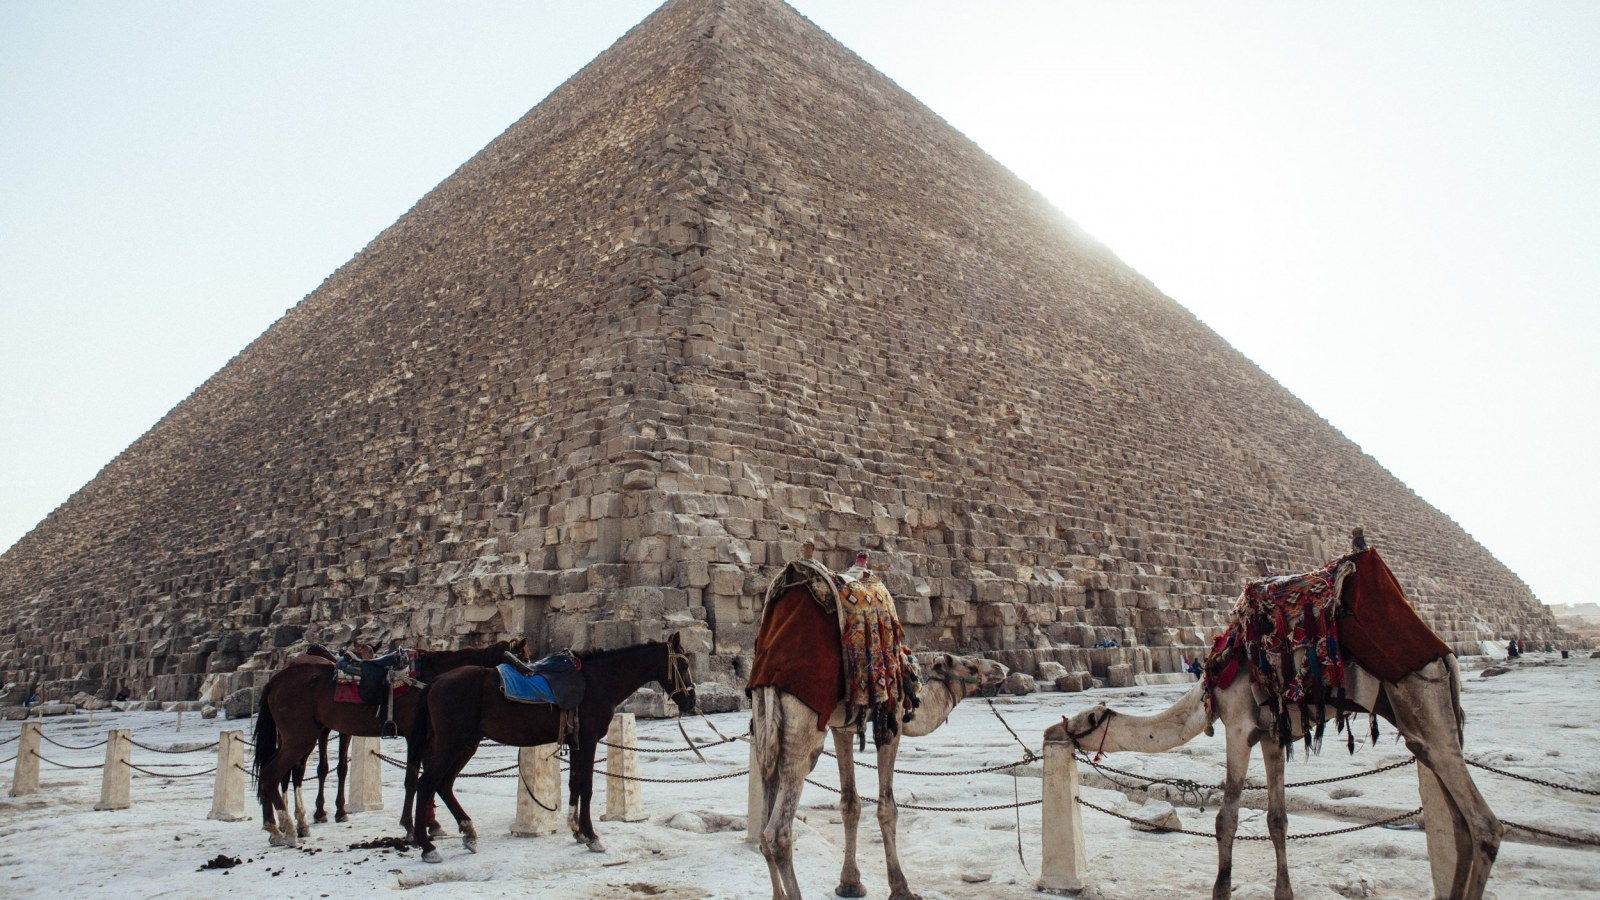 How Were The Pyramids Built? Scientists Discover How Ancient